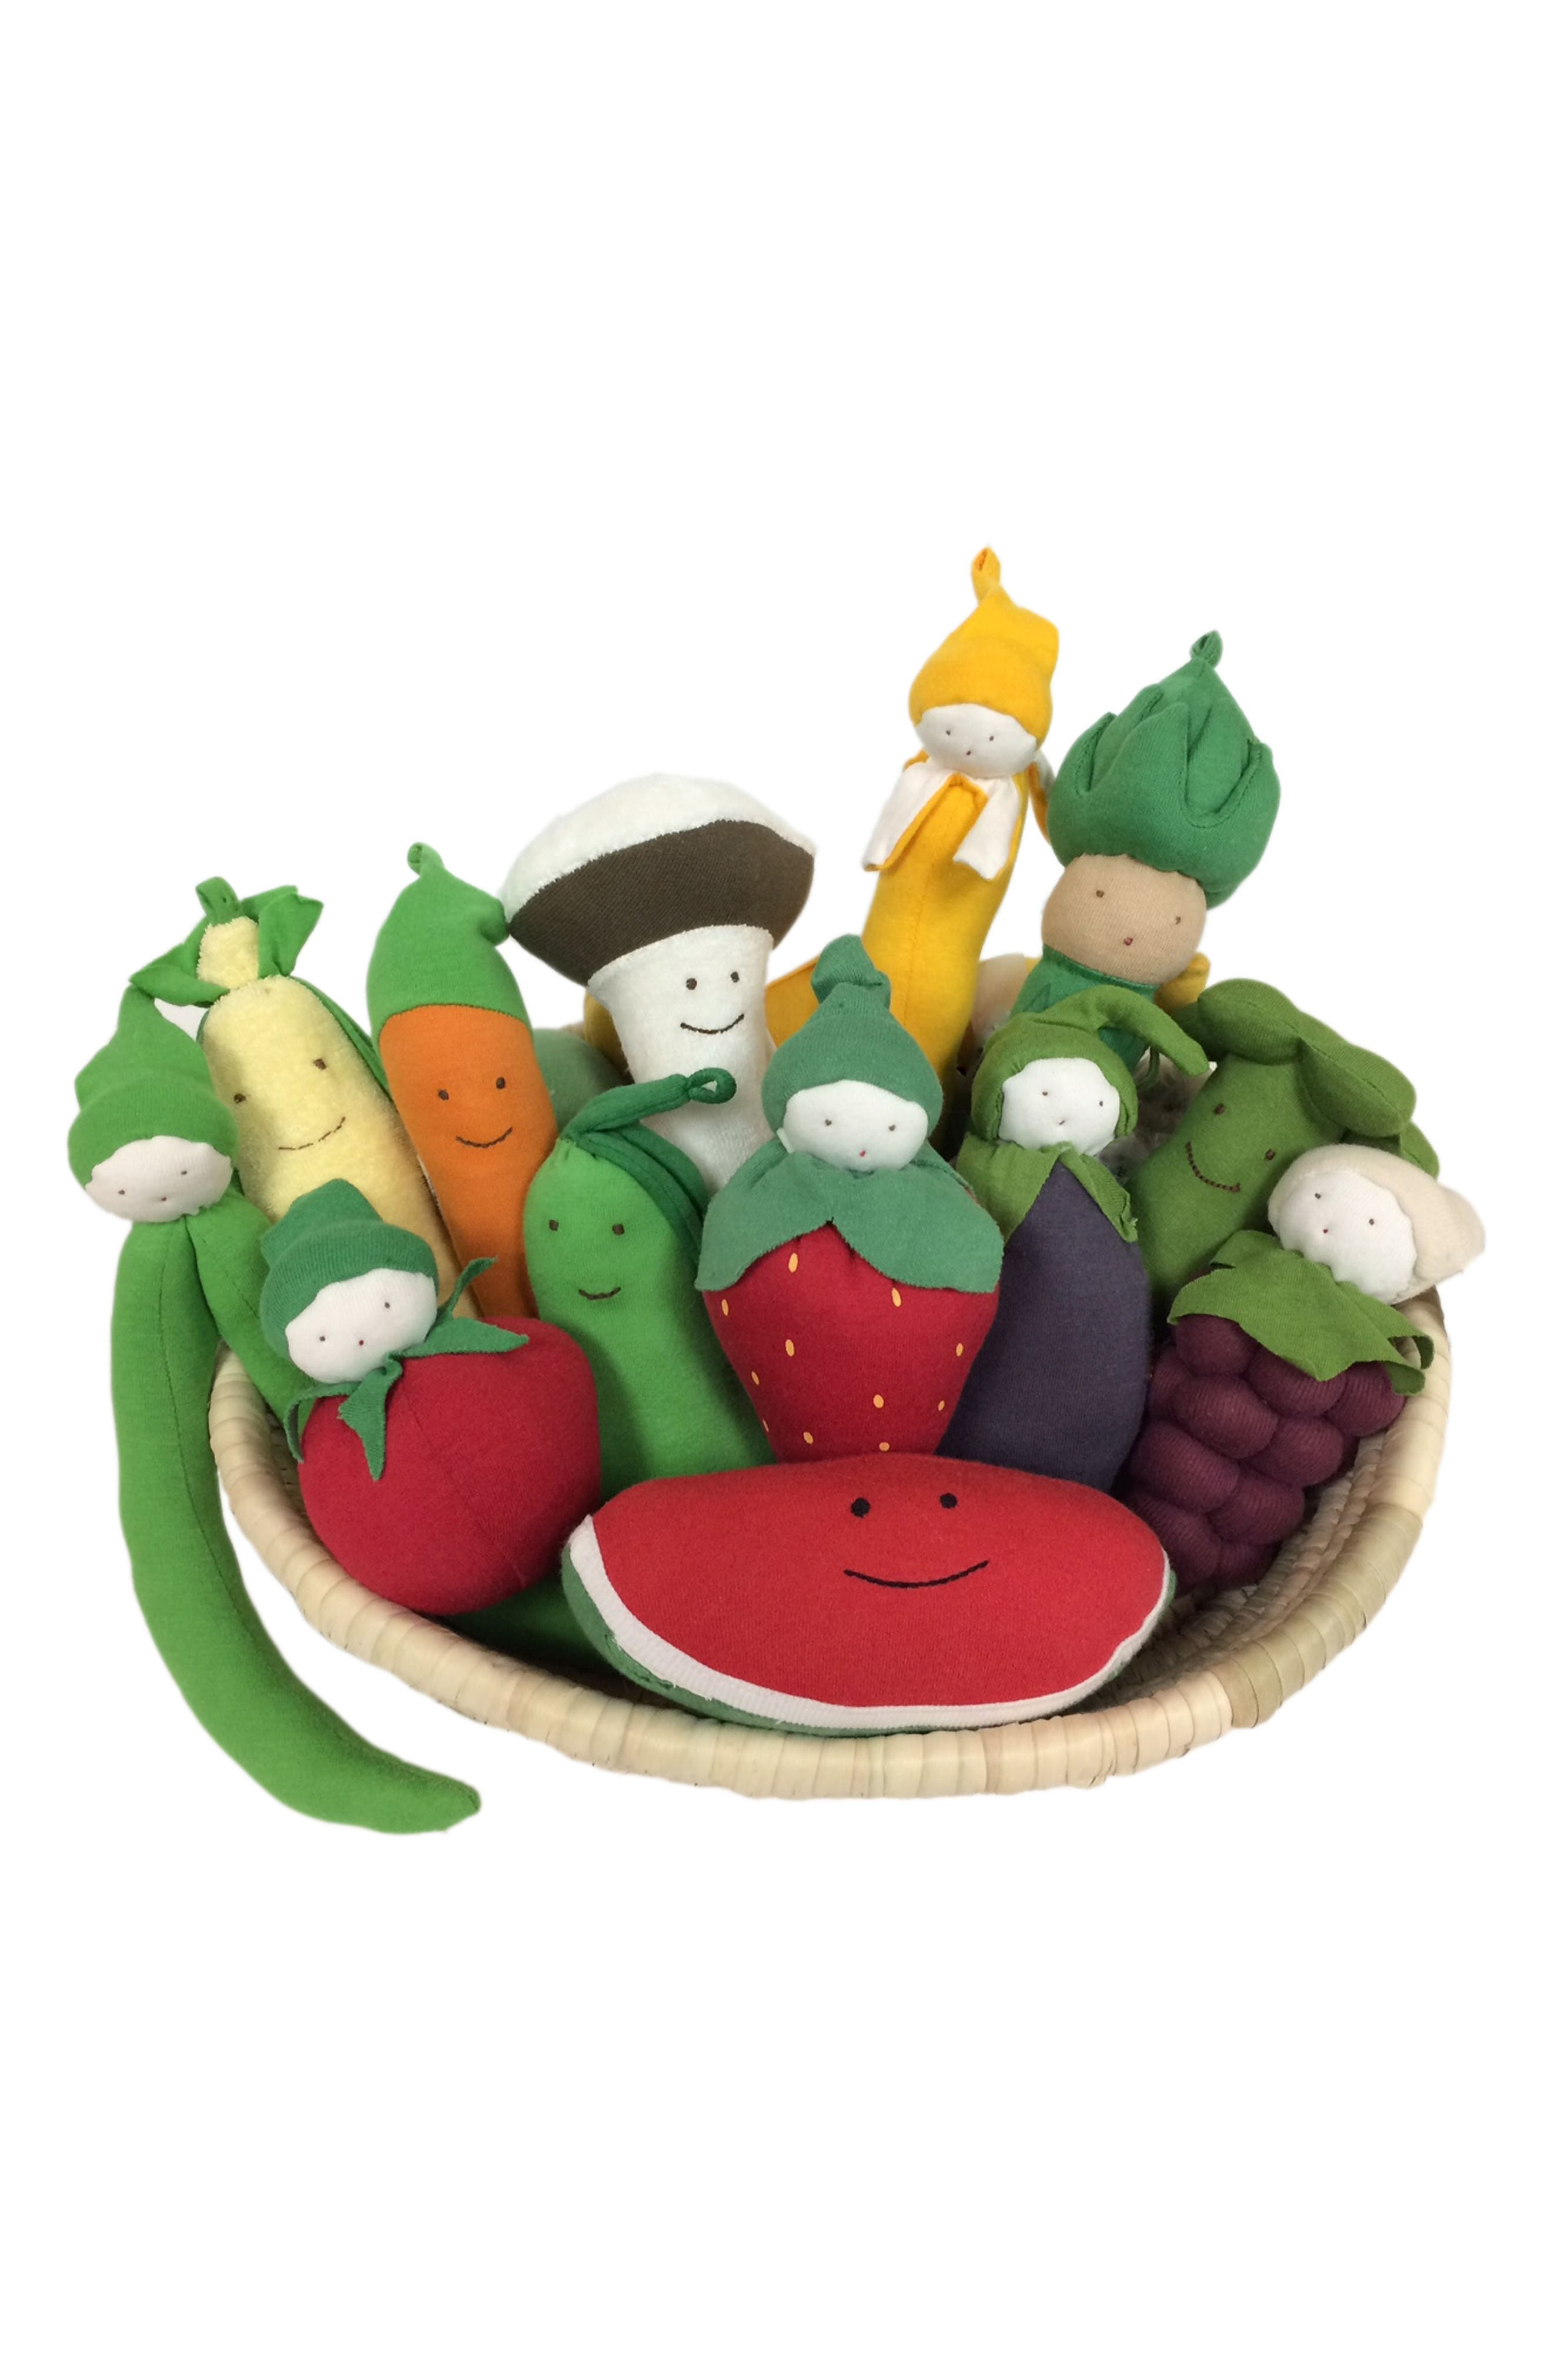 Under the Nile 14-Piece Stuffed Fruit & Vegetable Basket